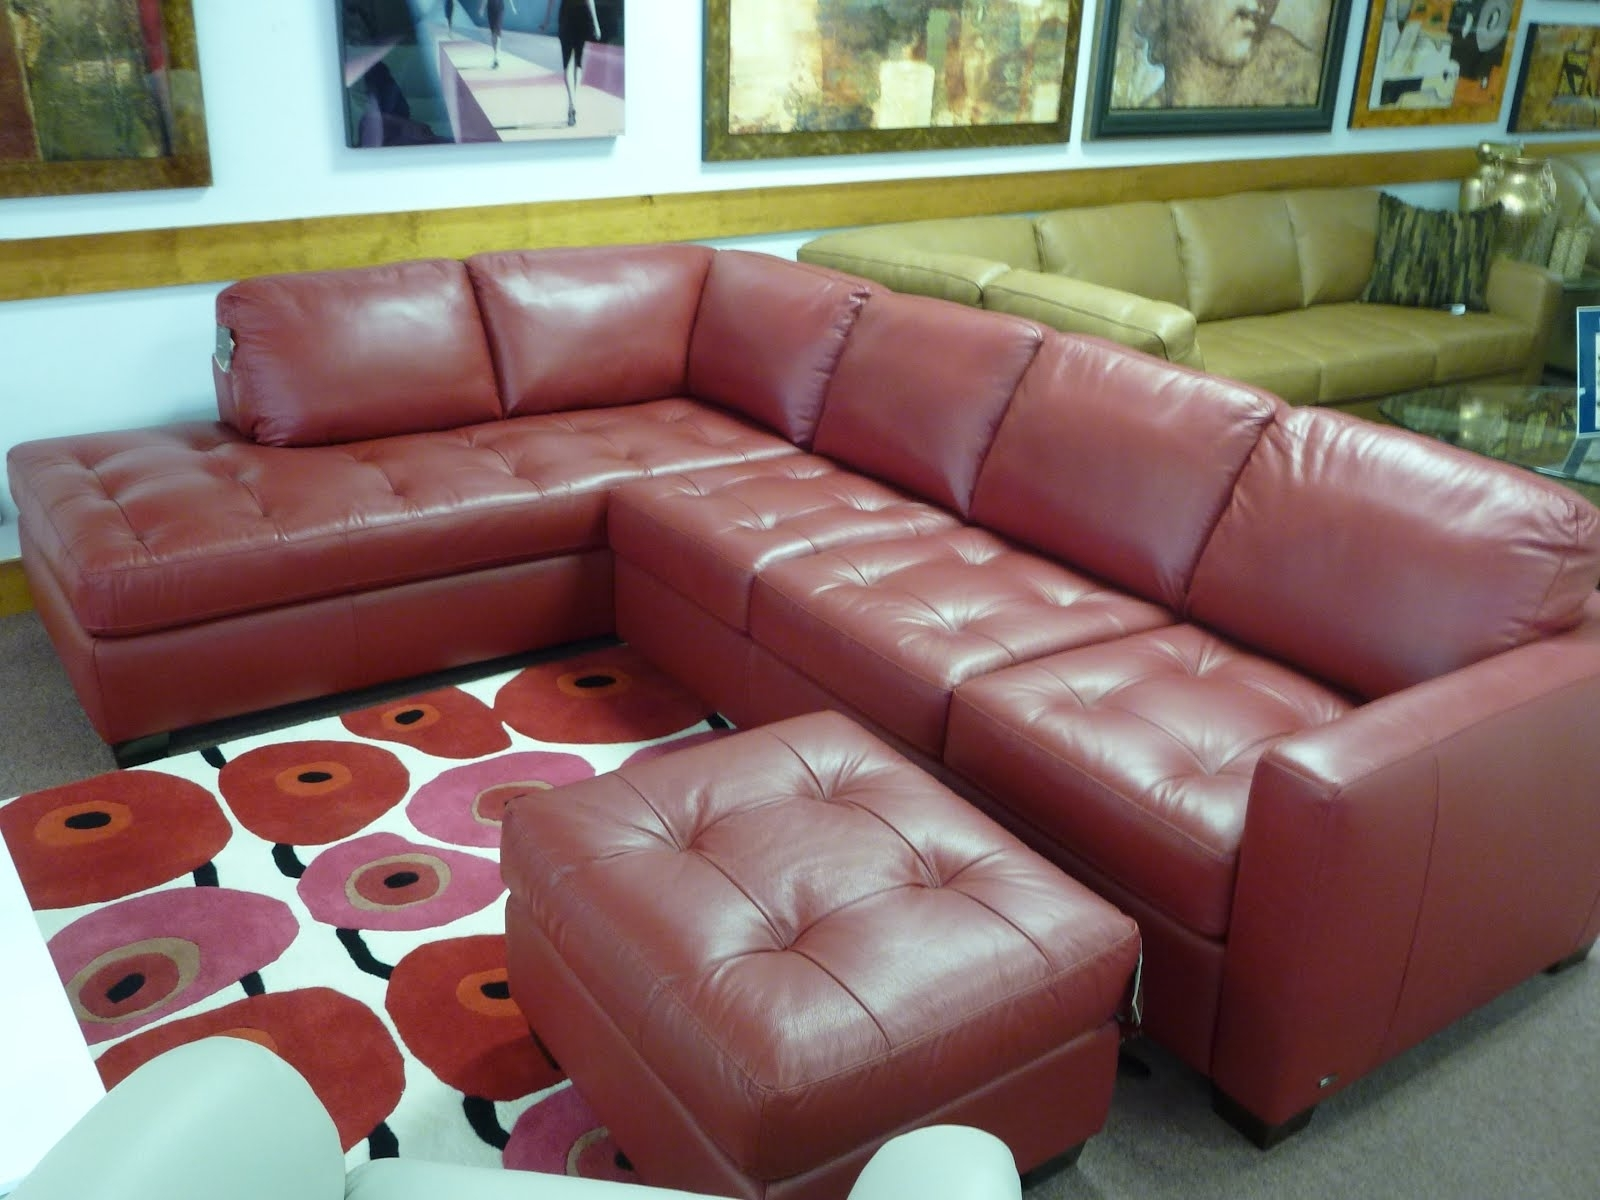 Trendy Red Leather Sectional Sofas With Ottoman In Sectional Sofa Design: Wonderful Natuzzi Leather Sectional Sofa (View 20 of 20)